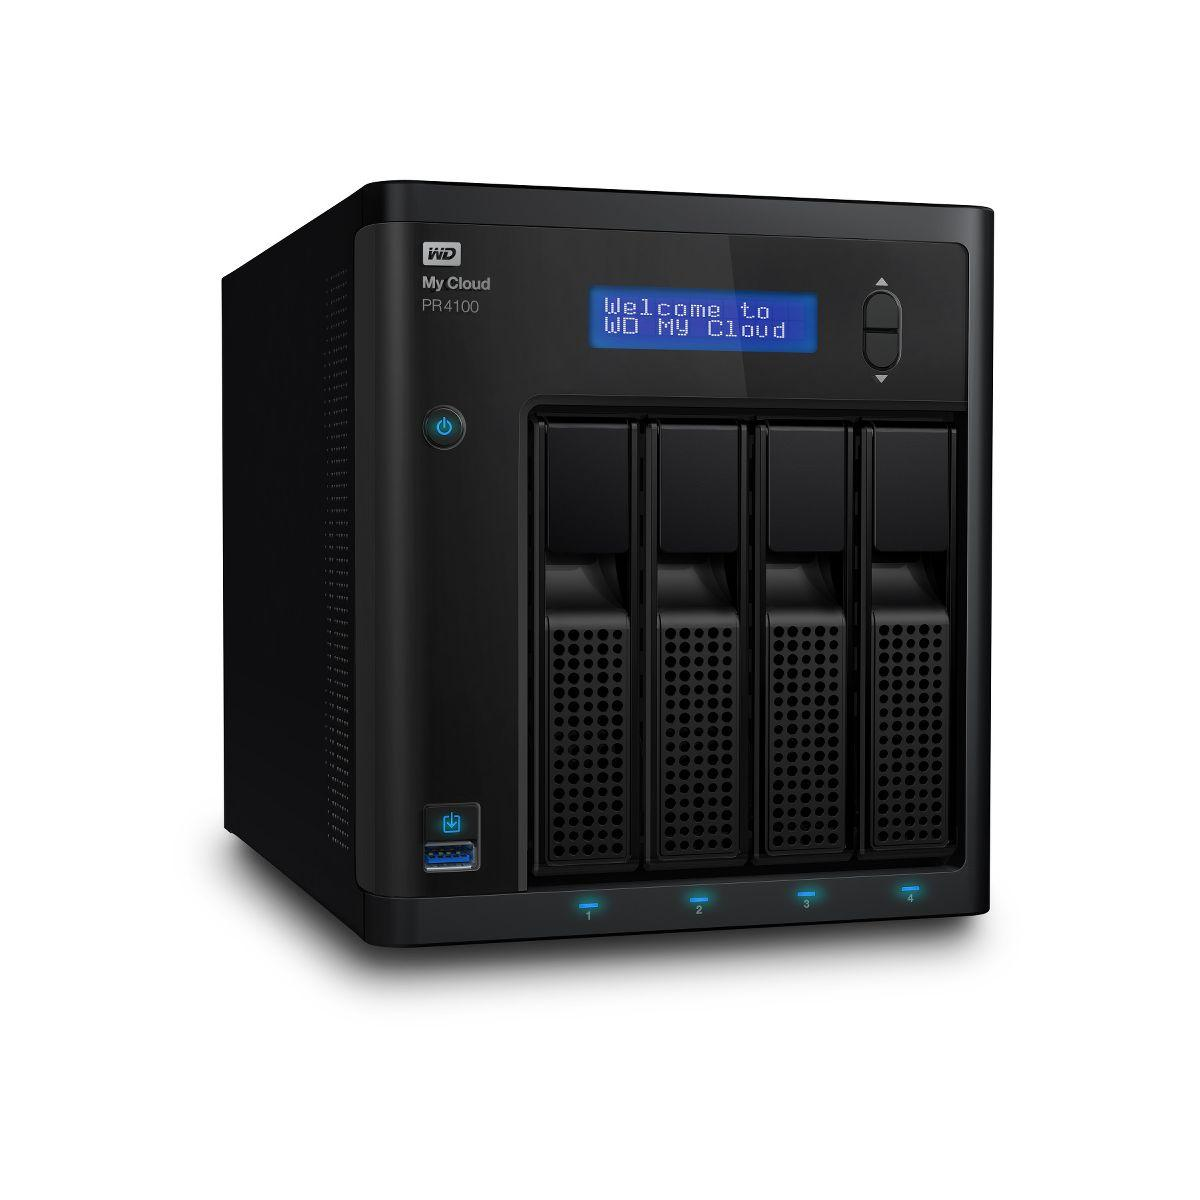 Serveur nas wd 2 baies nas my cloud pr4100 0to - 2% de remise ...